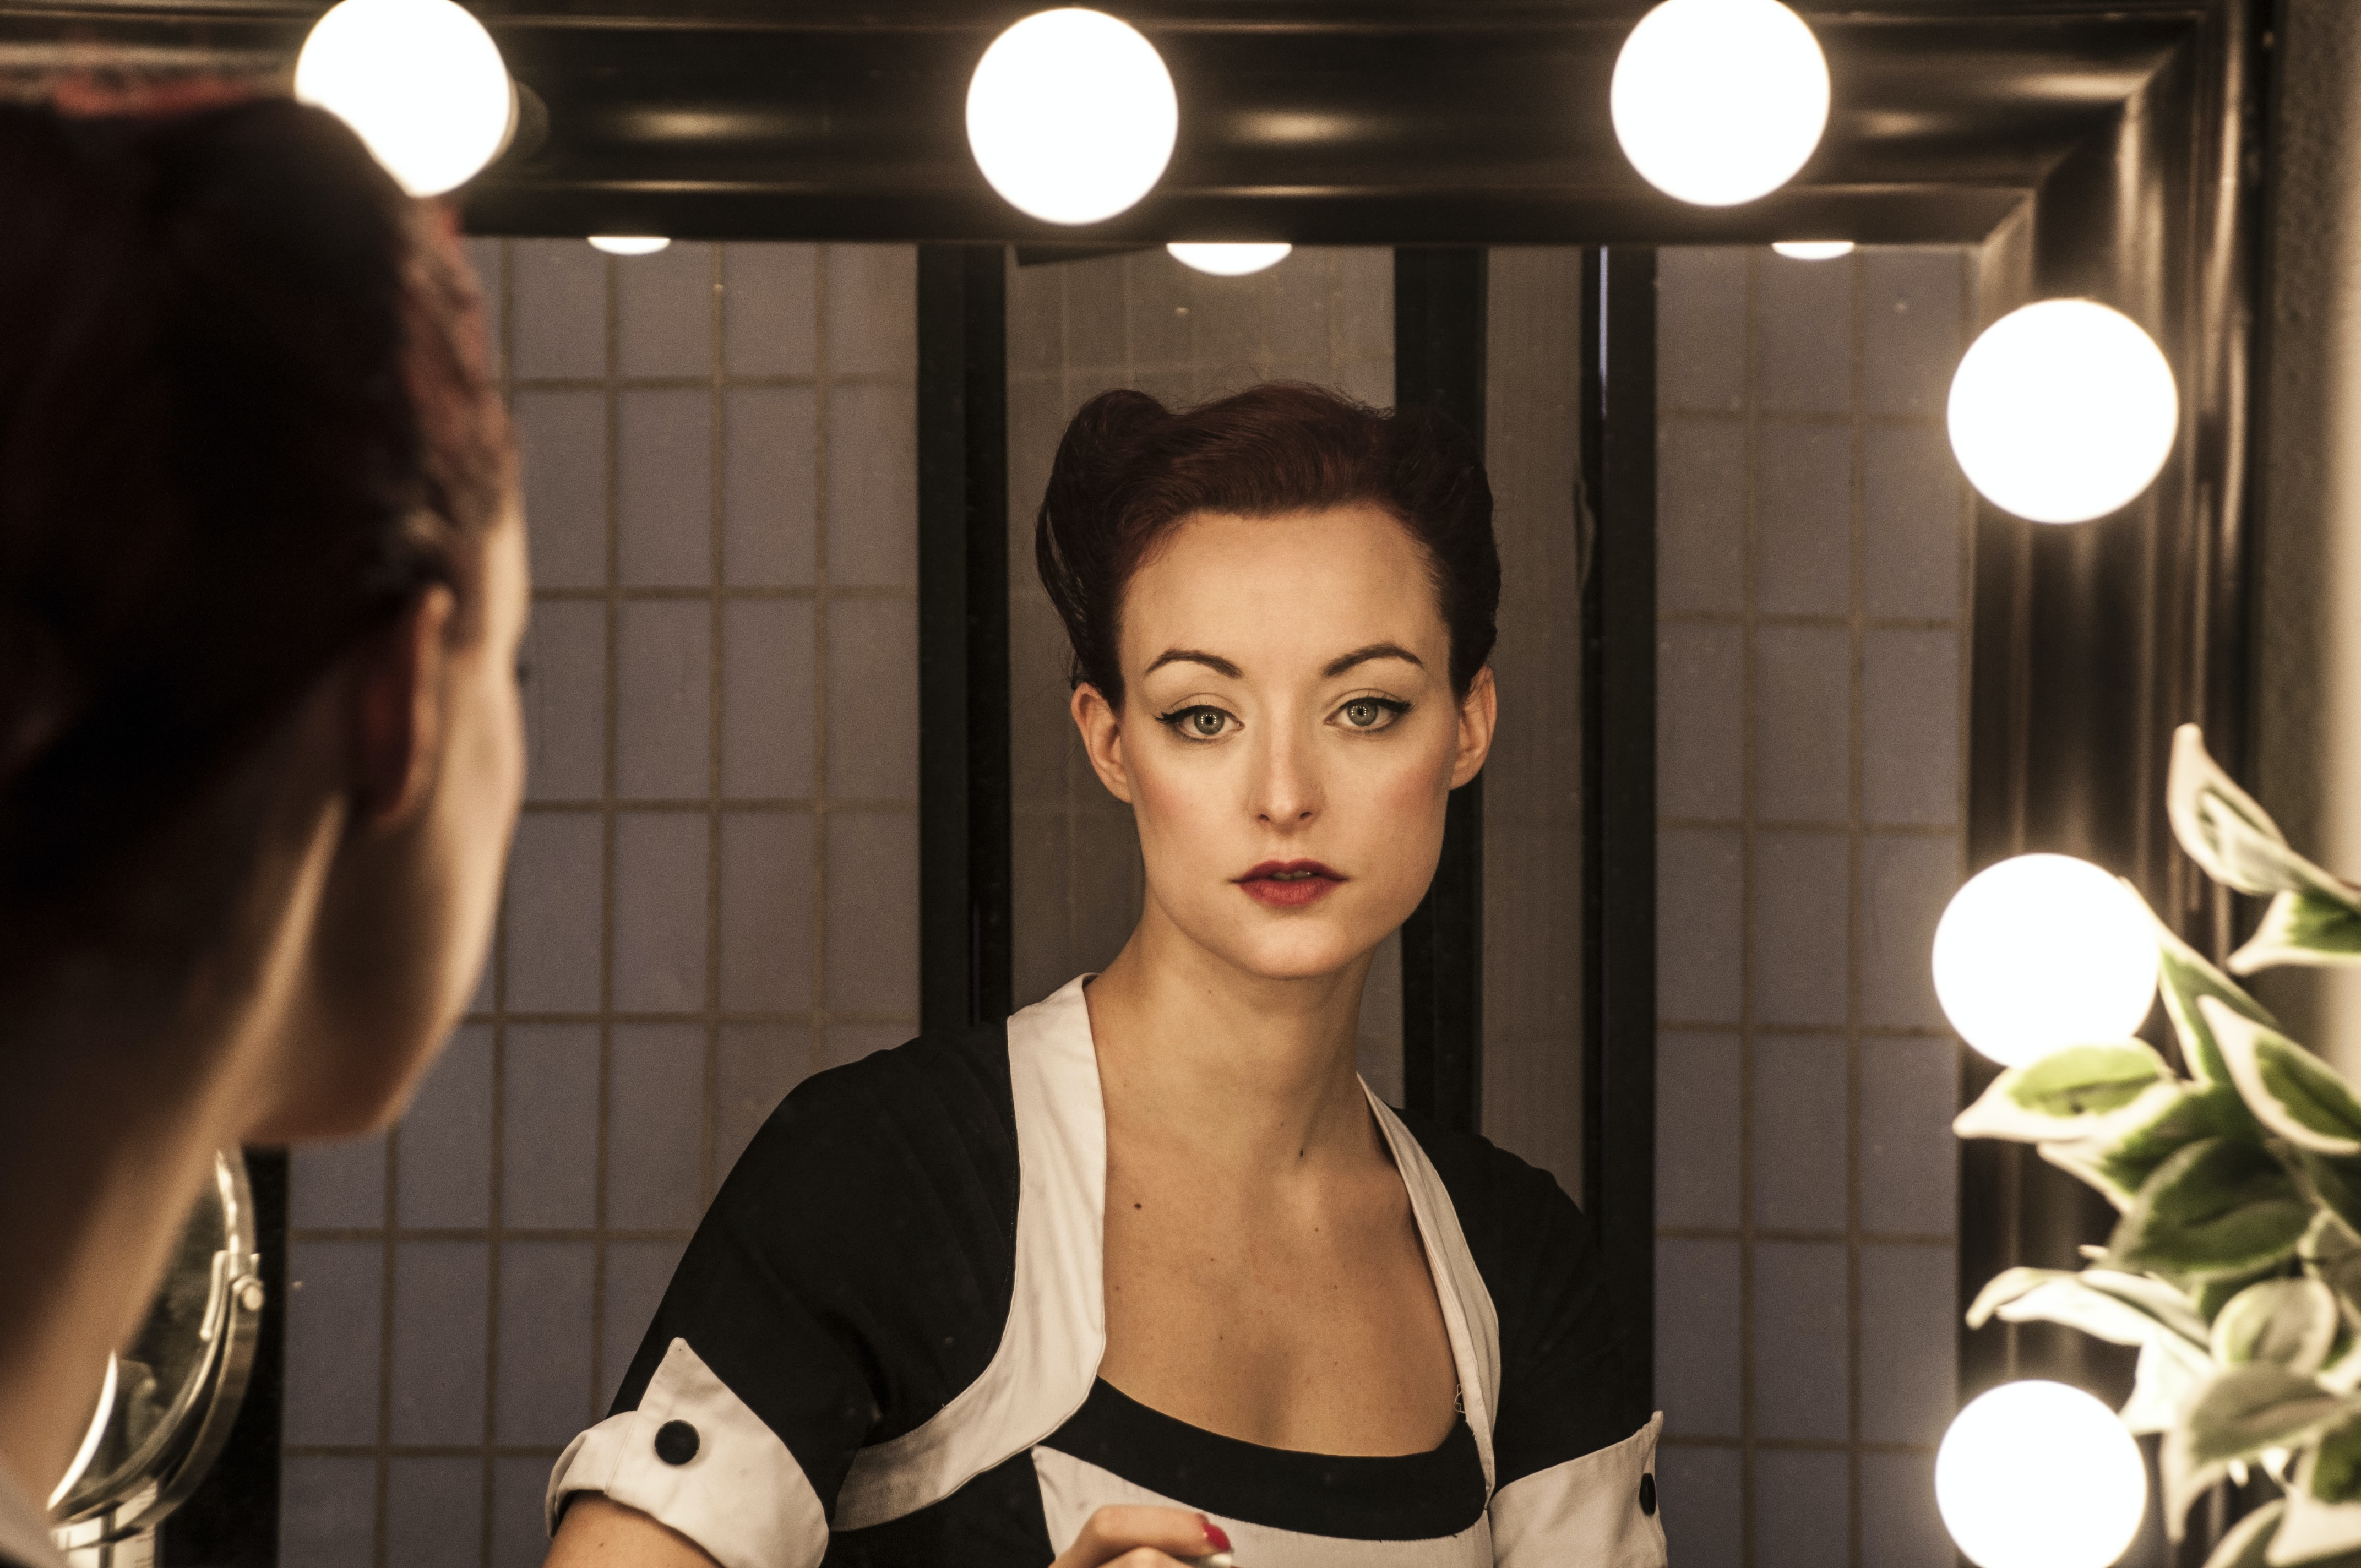 A woman in makeup and a black-and-white dress looks into a lighted mirror